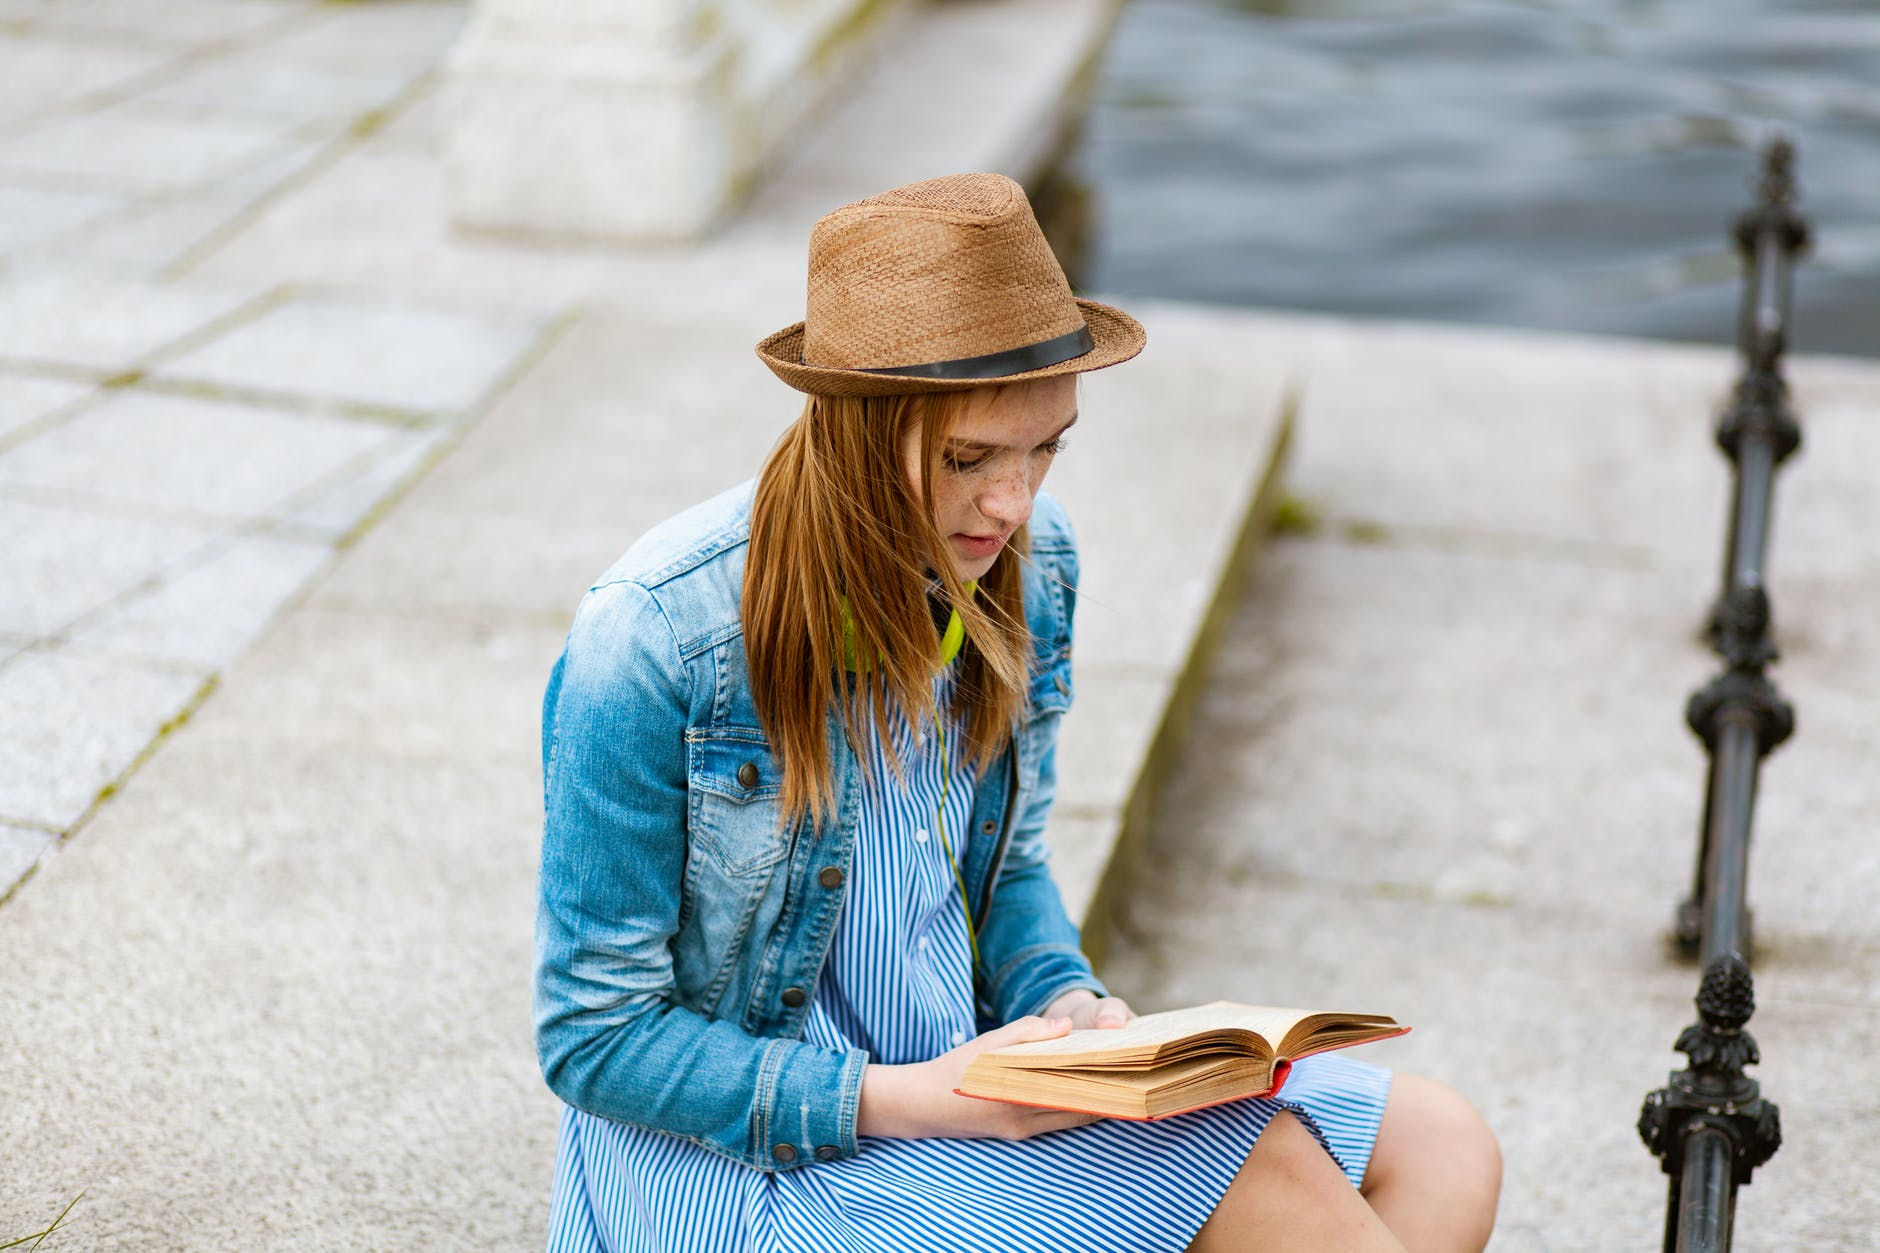 woman sitting on grey concrete pavement reading book